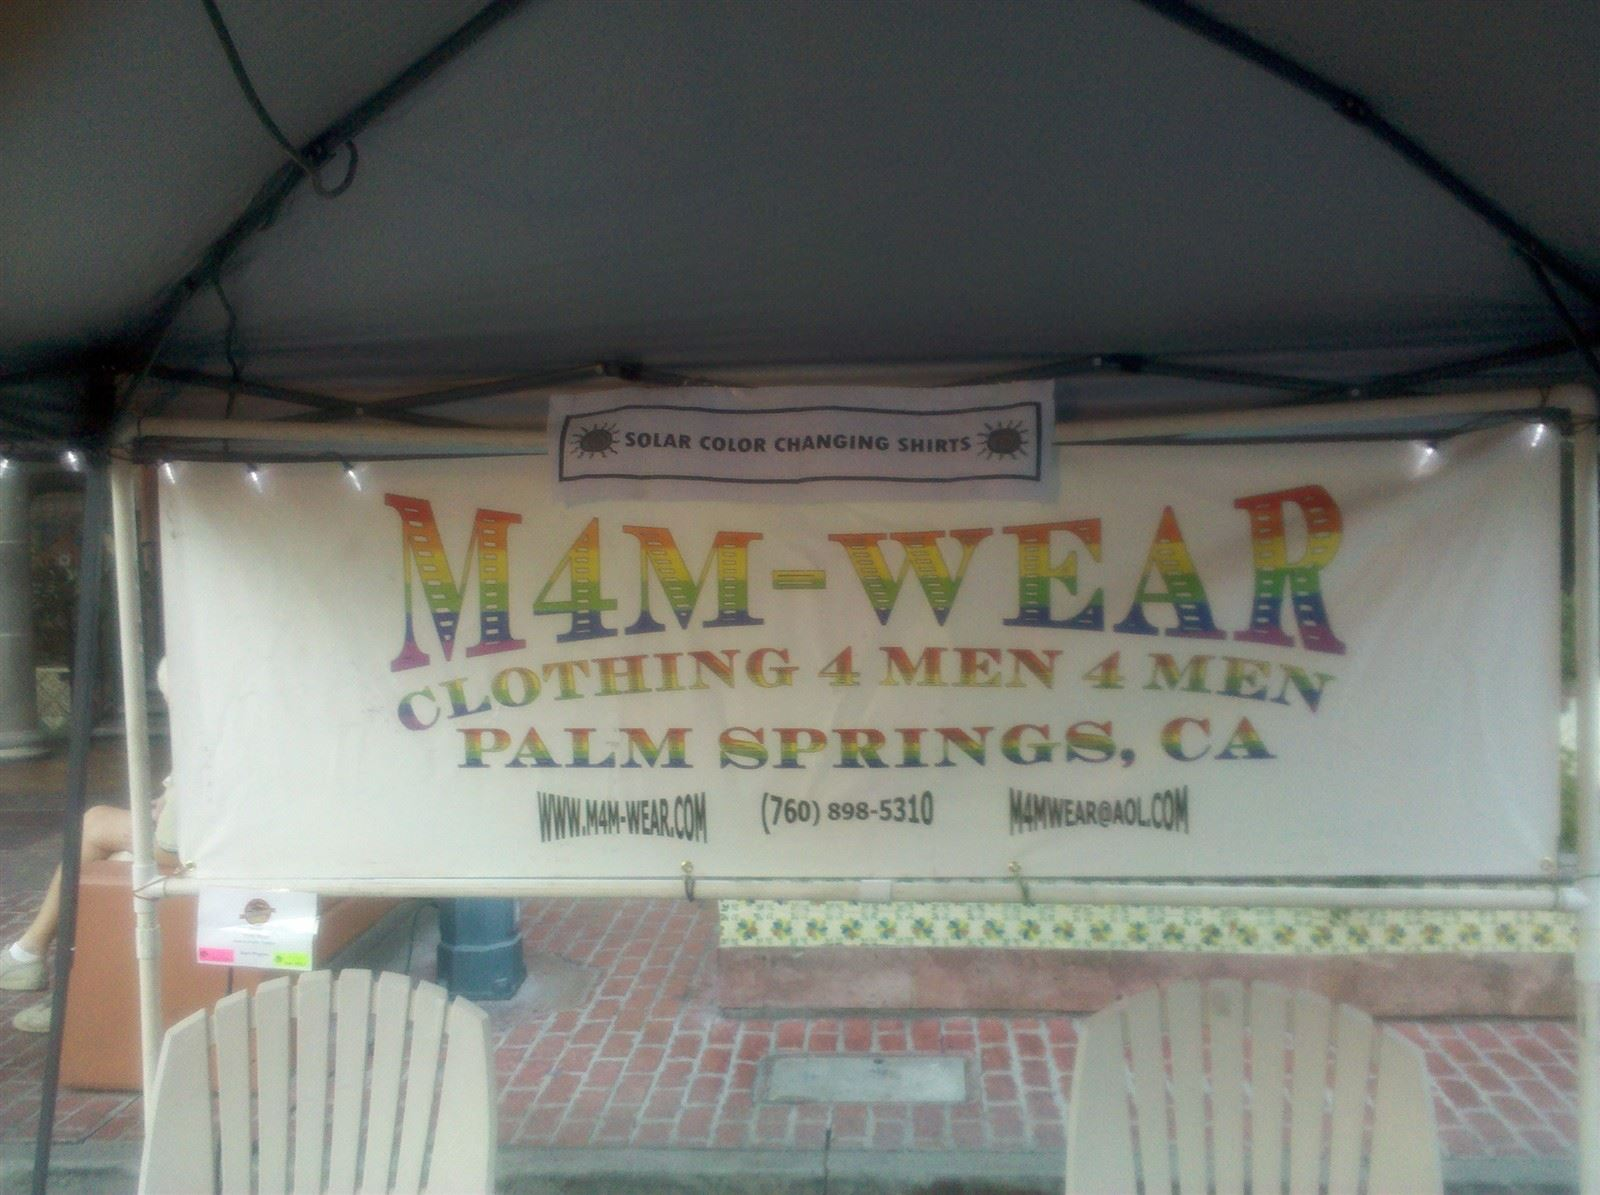 M4M-WEAR Booth at Palm Springs Village Fest Sign